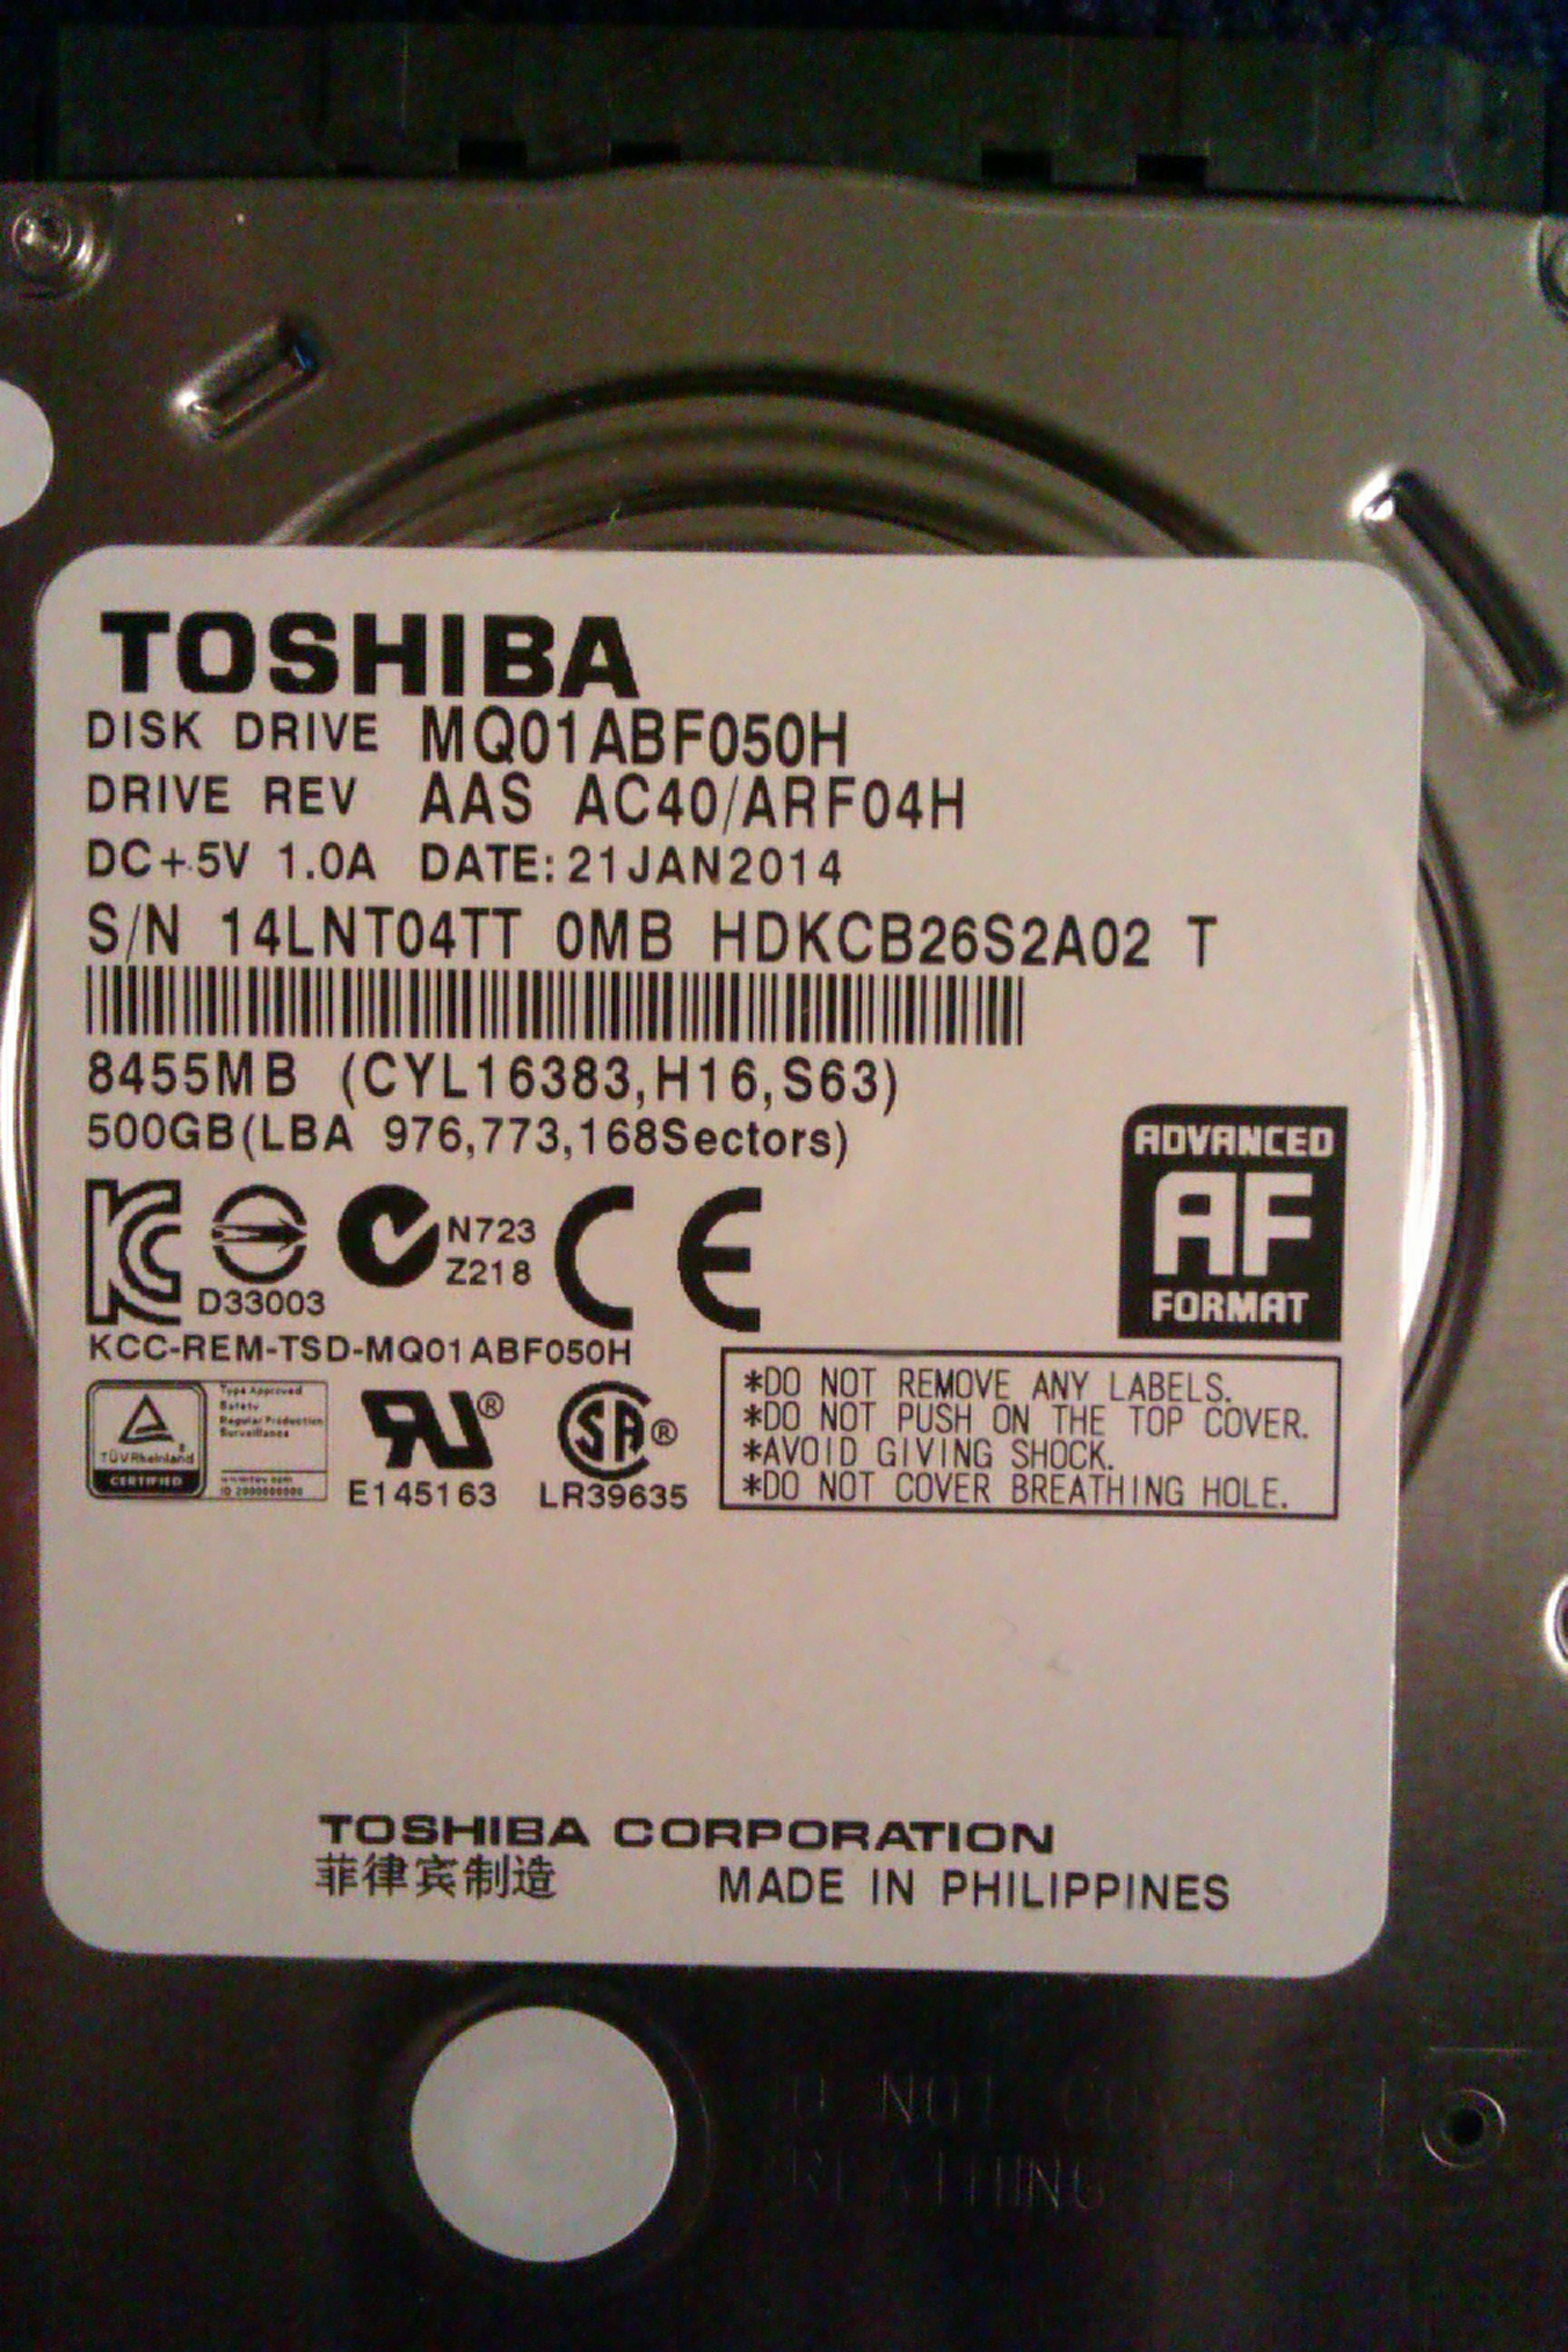 Trying to load factory discs on new toshiba hard drive gets